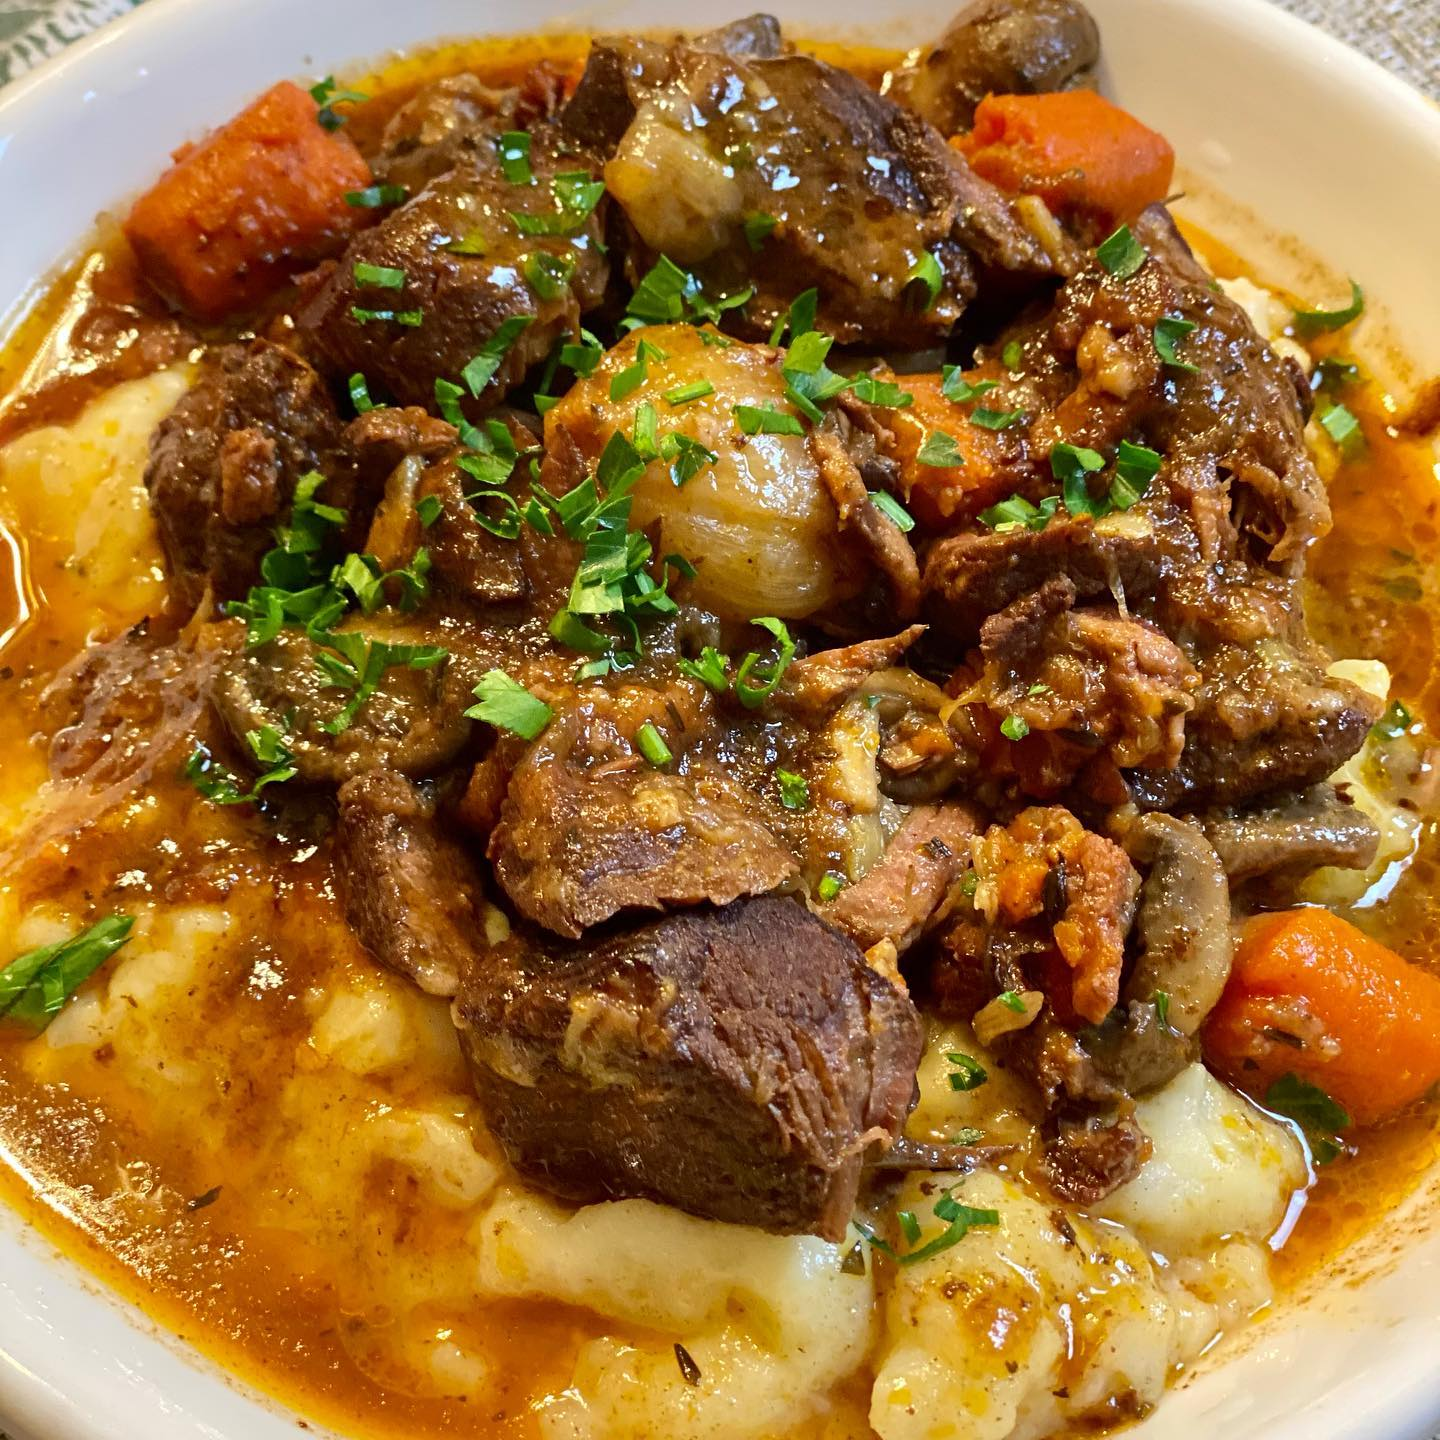 Julia Child's Famous Beef Bourguignon